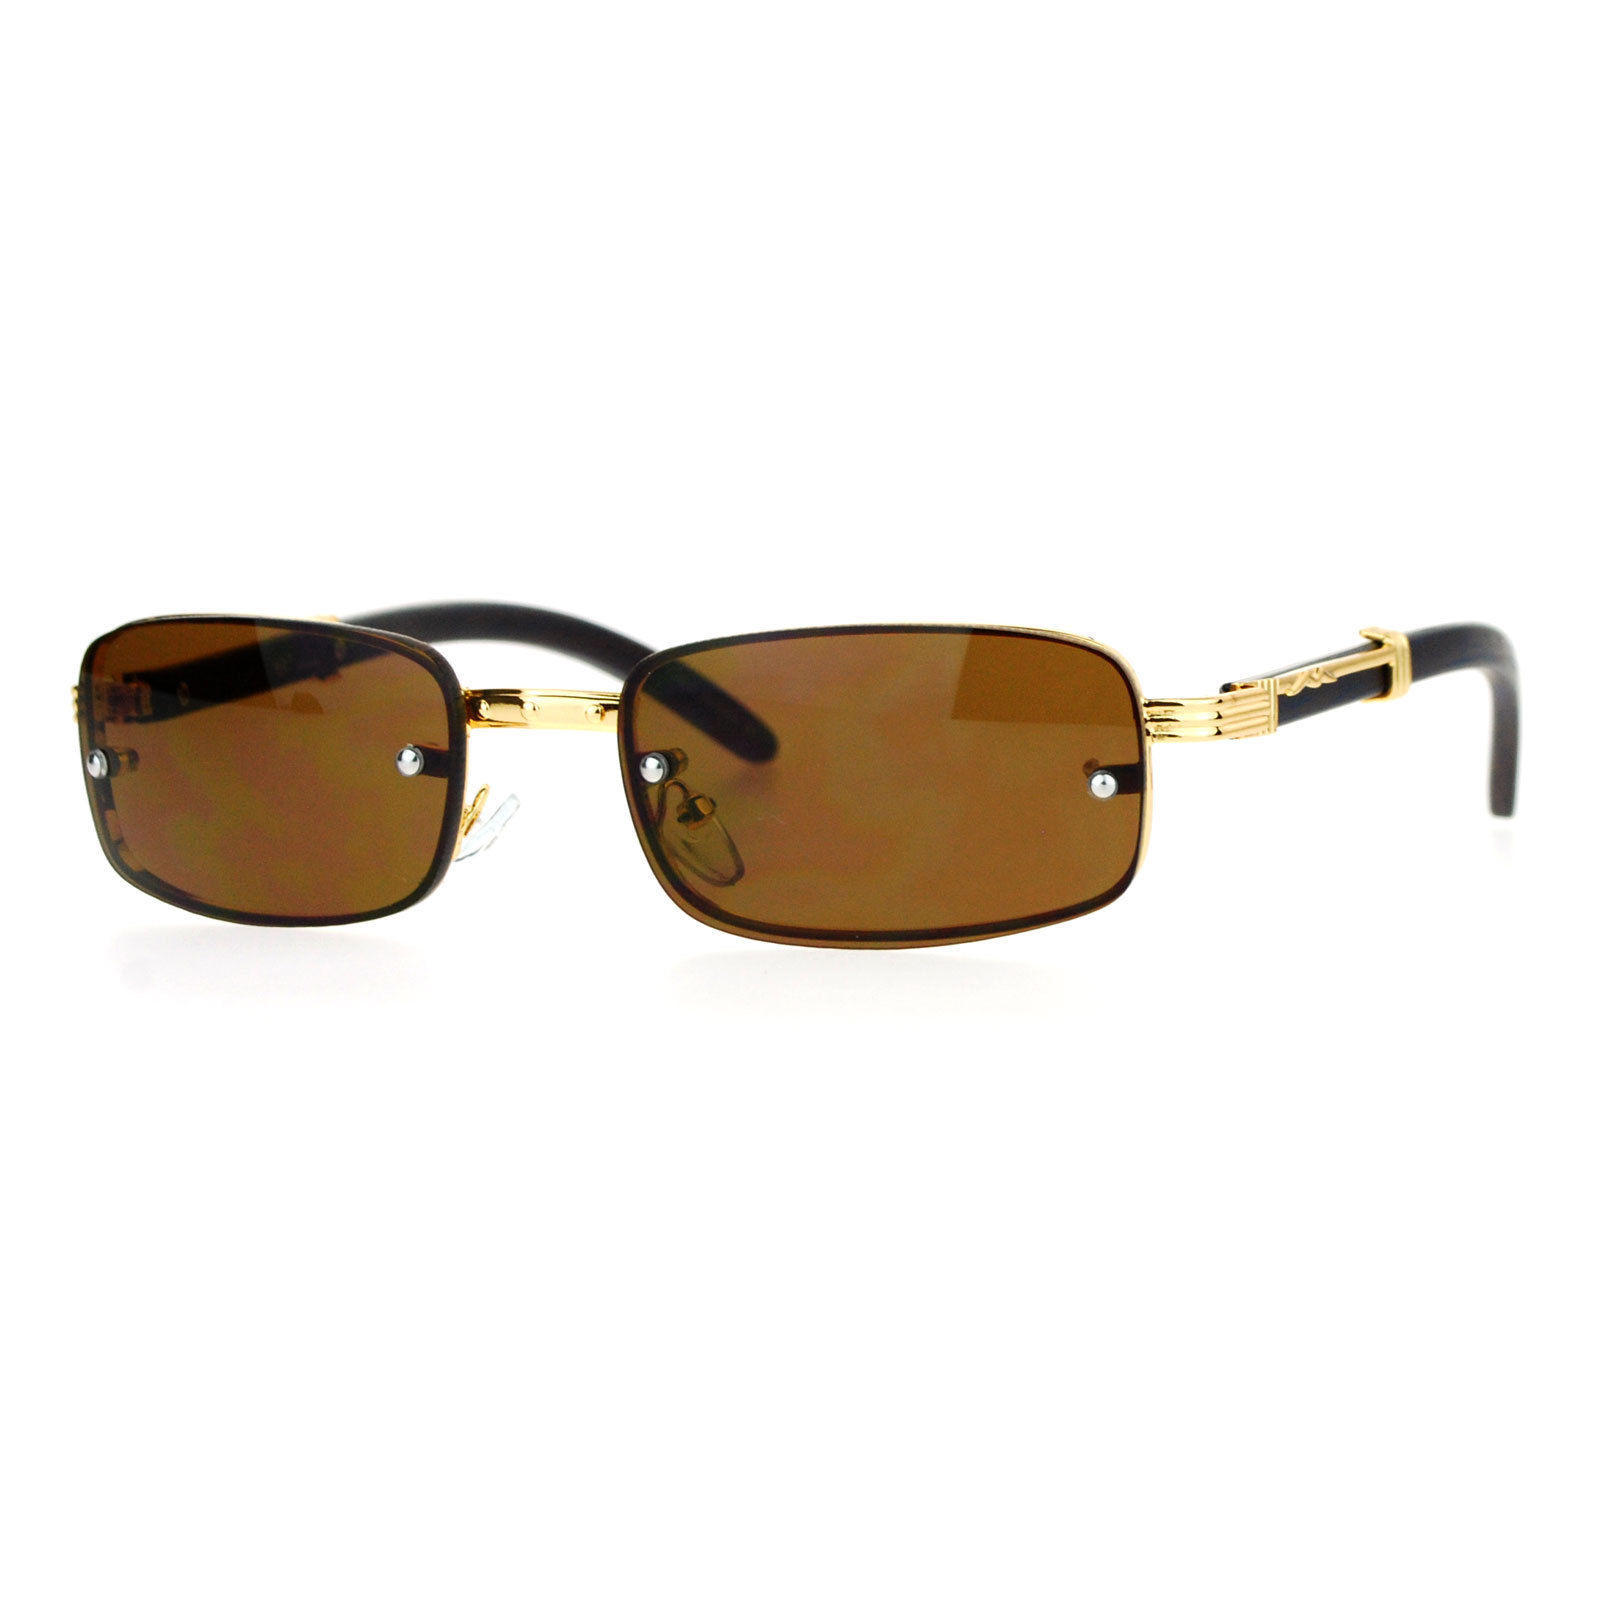 Rimless Look Rectangular Sunglasses Unisex Vintage Designer Fashion Shades